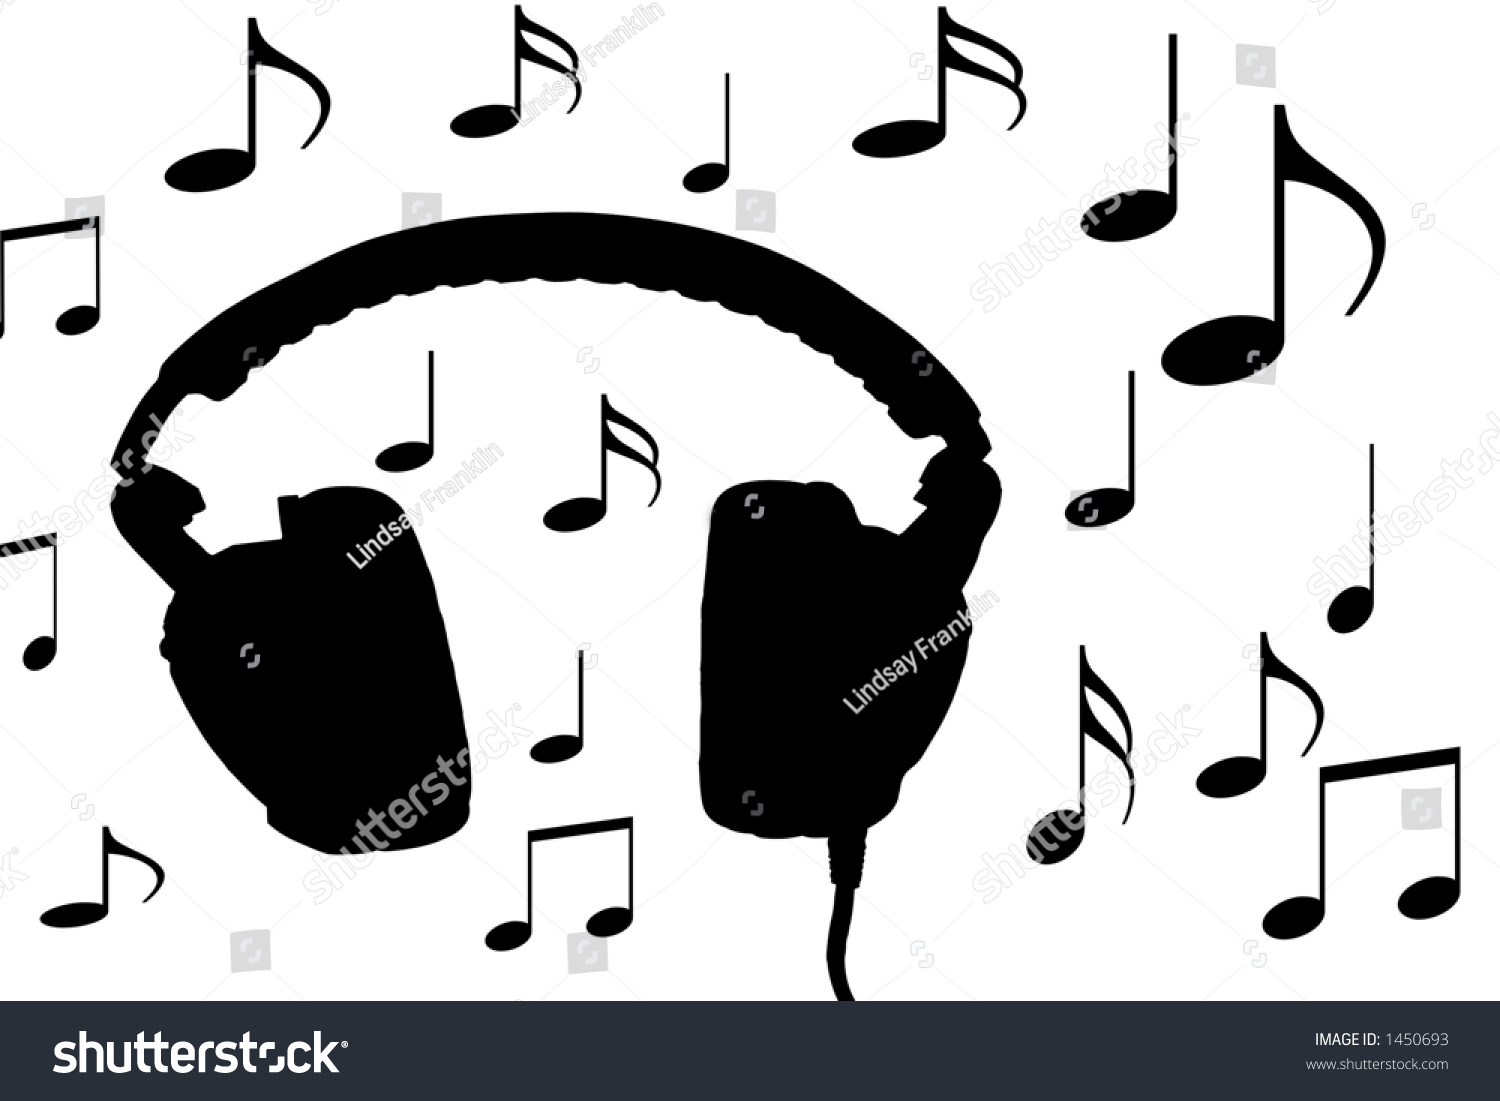 Headphones Music Notes: Headphones And Musical Notes Stock Photo 1450693